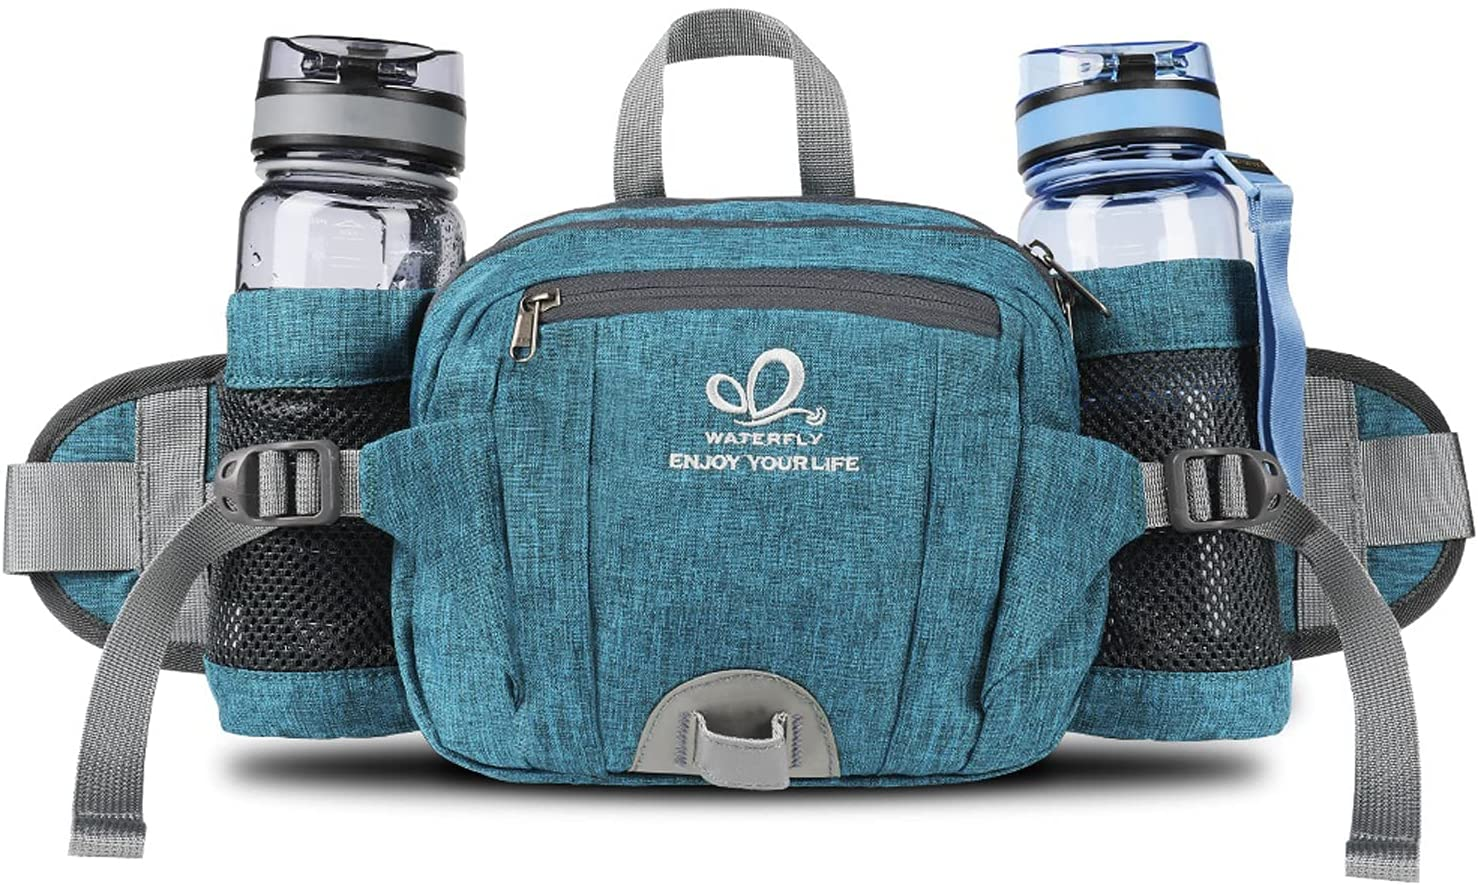 WATERFLY Fanny Pack with Classic Water Packs Holder Bottle Super sale period limited Hiking Waist